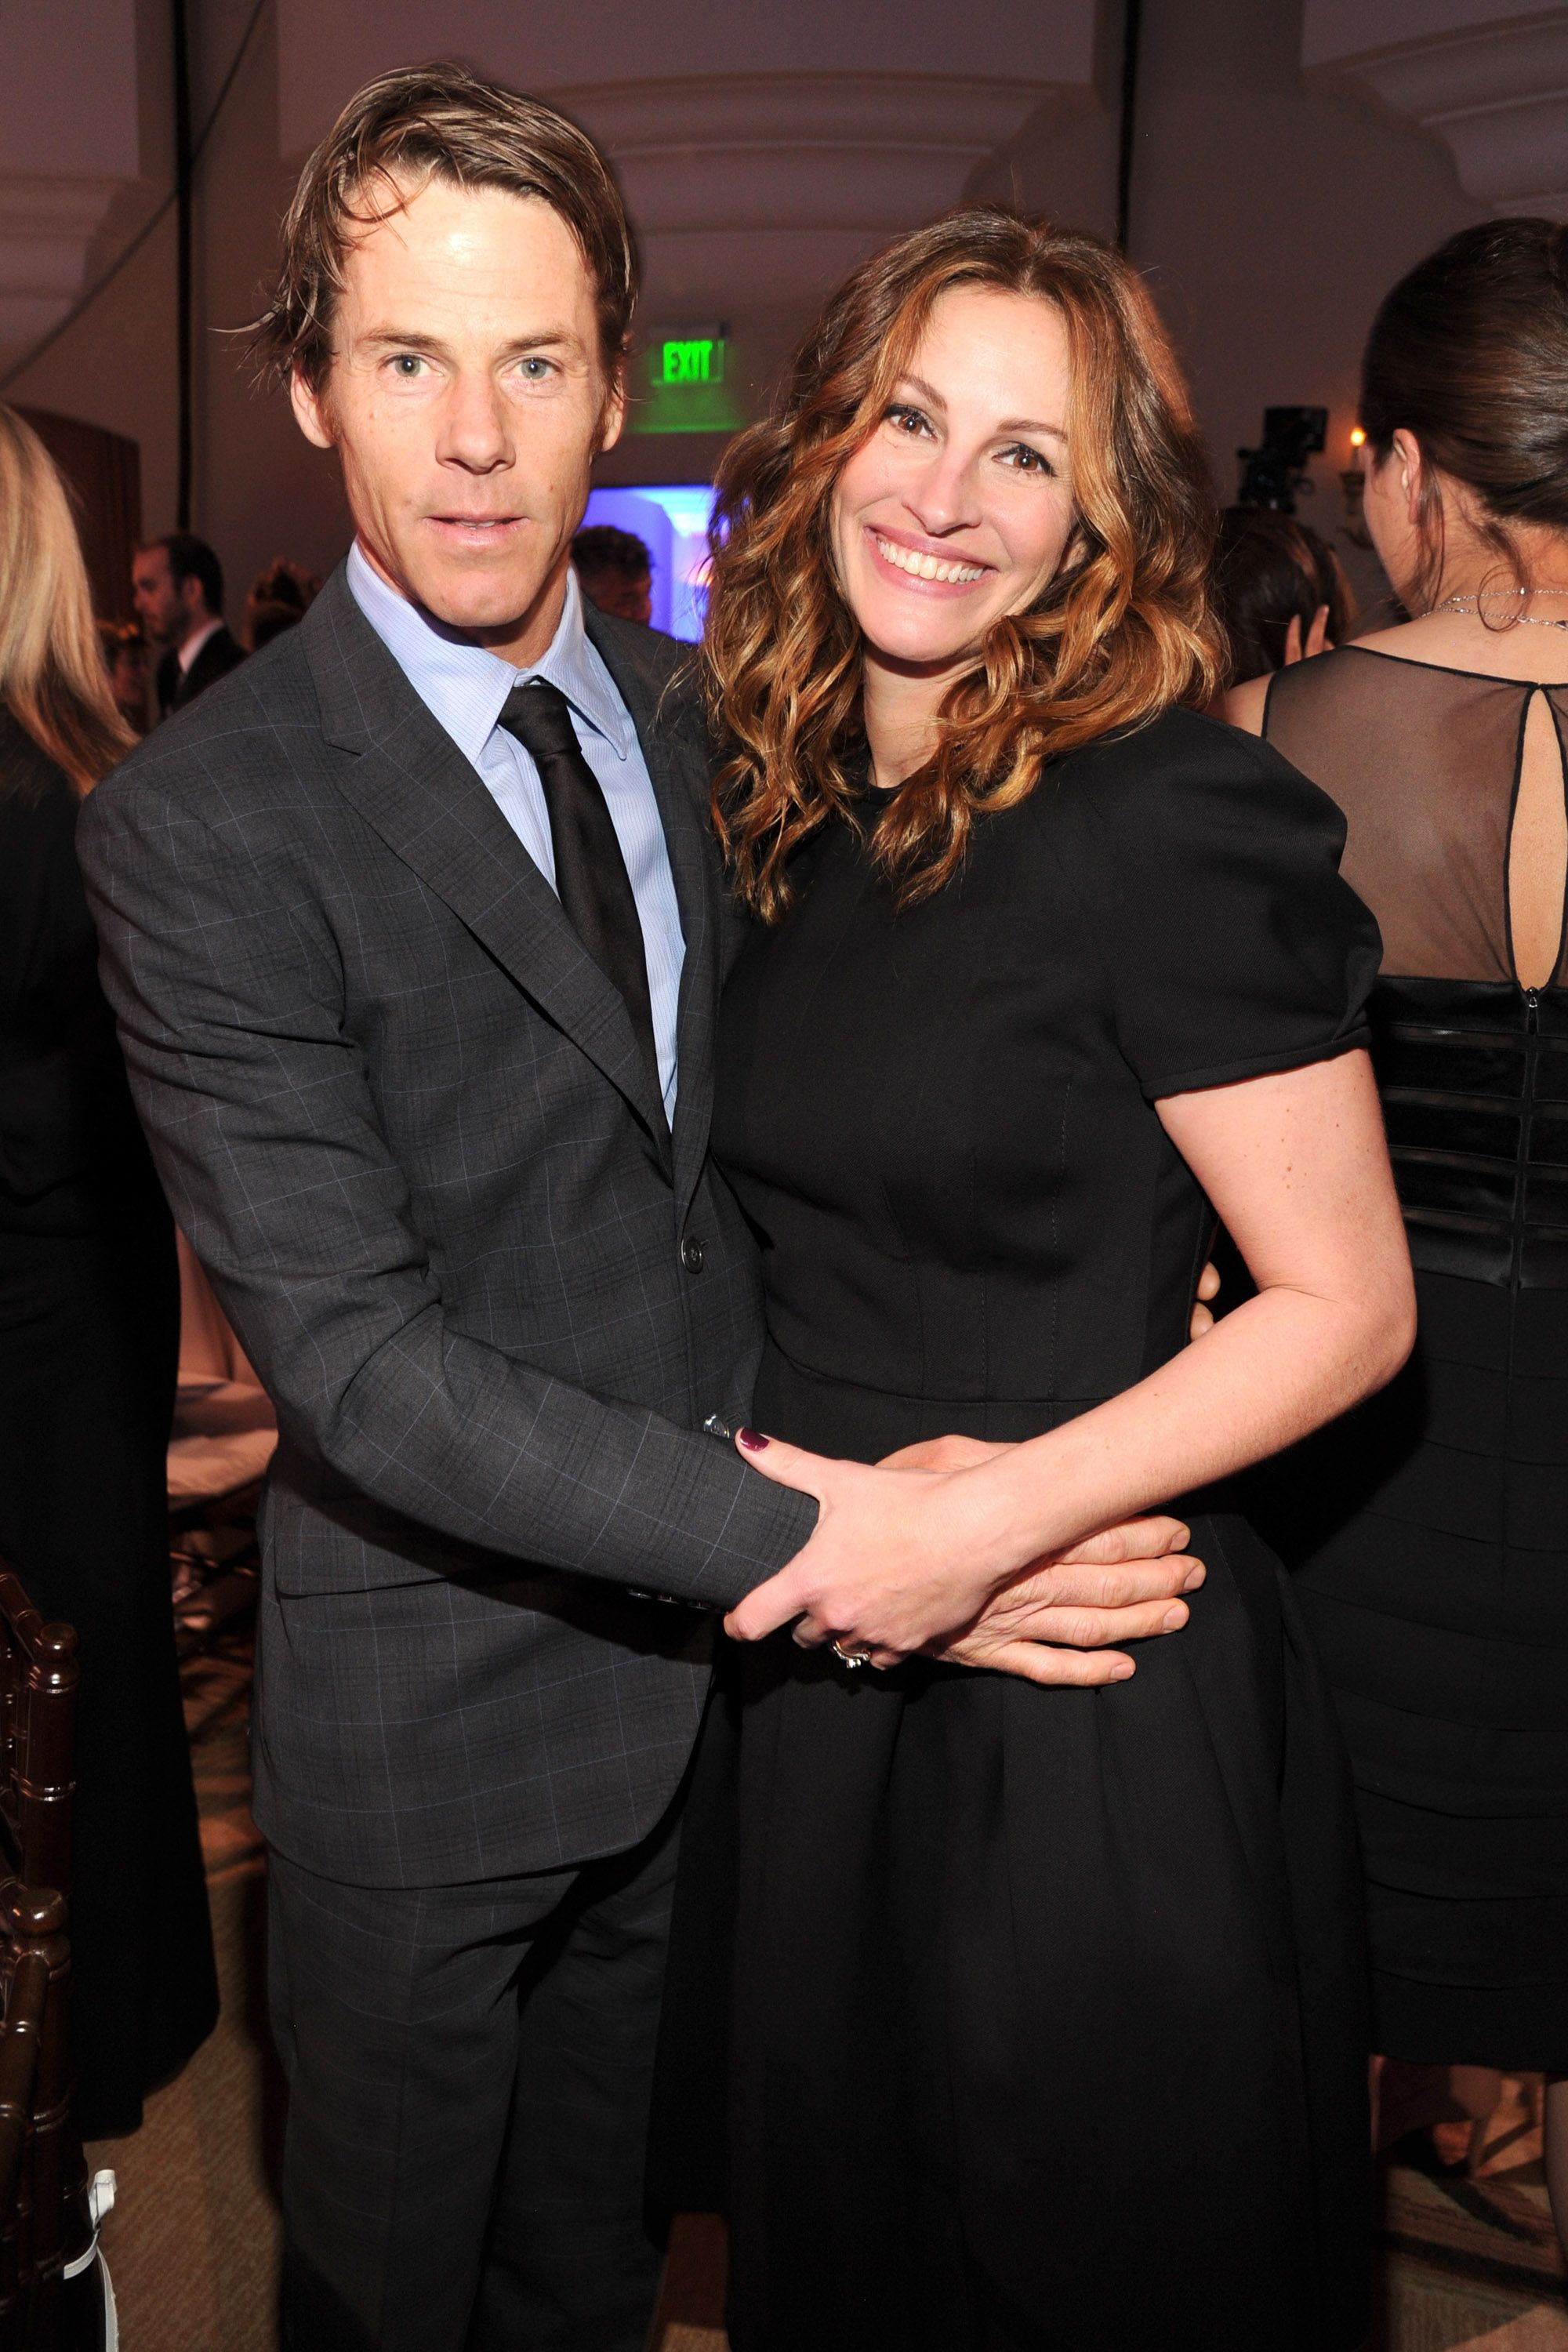 Julia Roberts and Danny Moder met when he was the cameraman on her film.